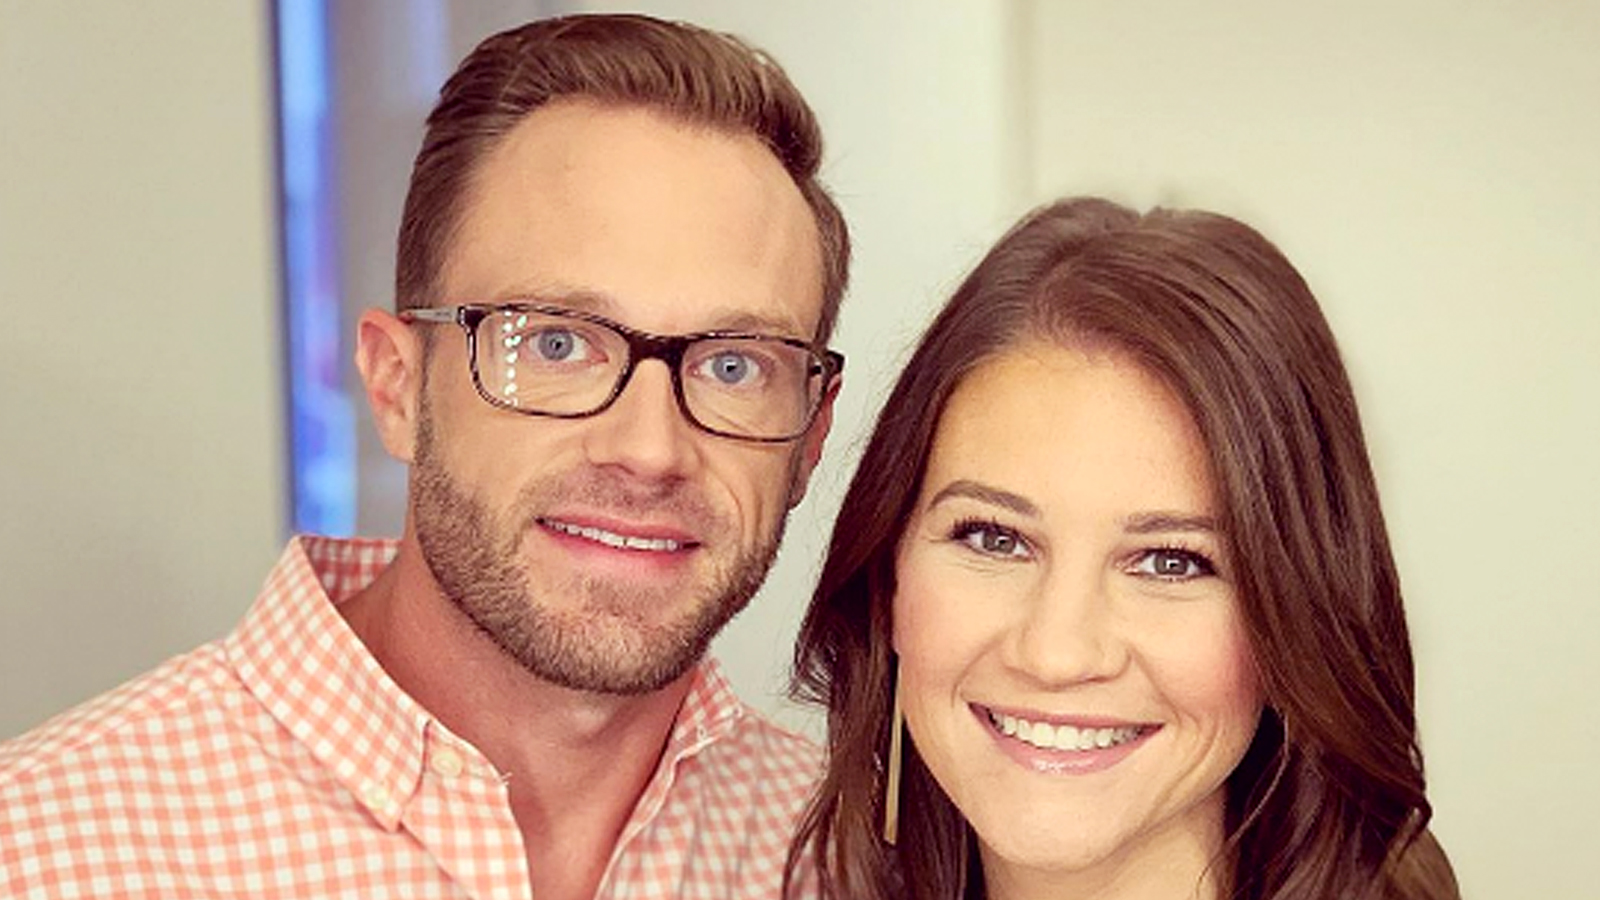 Outdaughtered Couple Share Their Workout Routine By Complimenting Each Other